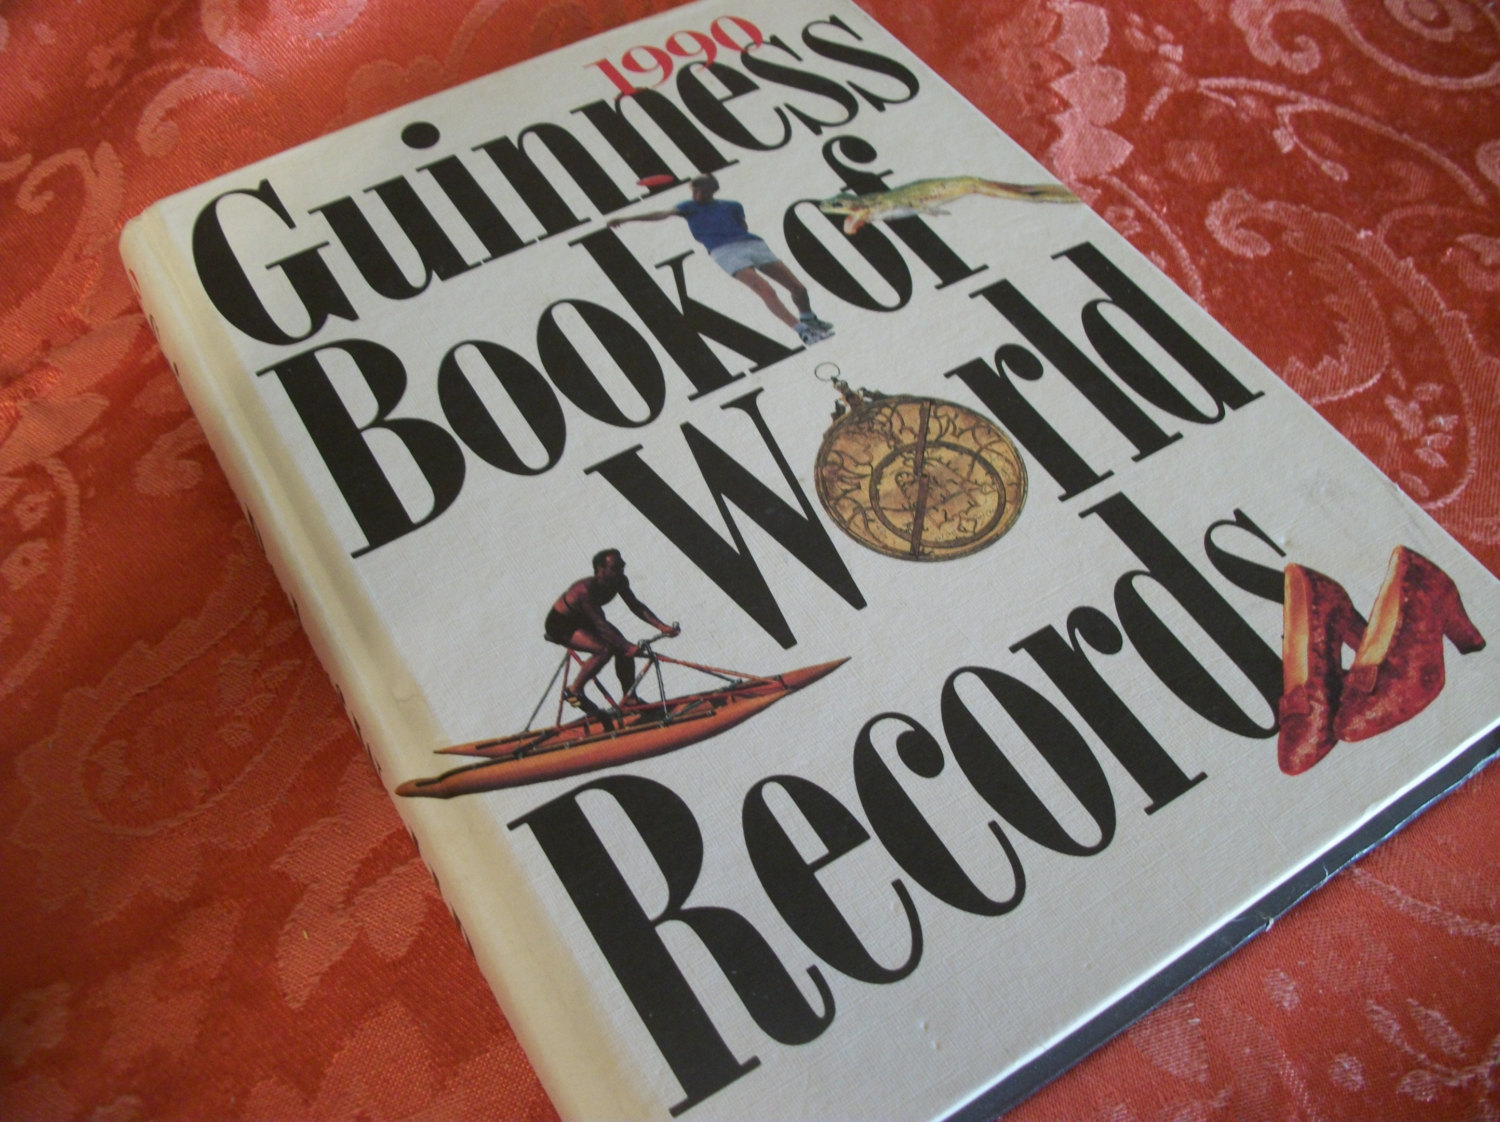 Guinness Book of World Records 1990 Hardback by TKSPRINGTHINGS.